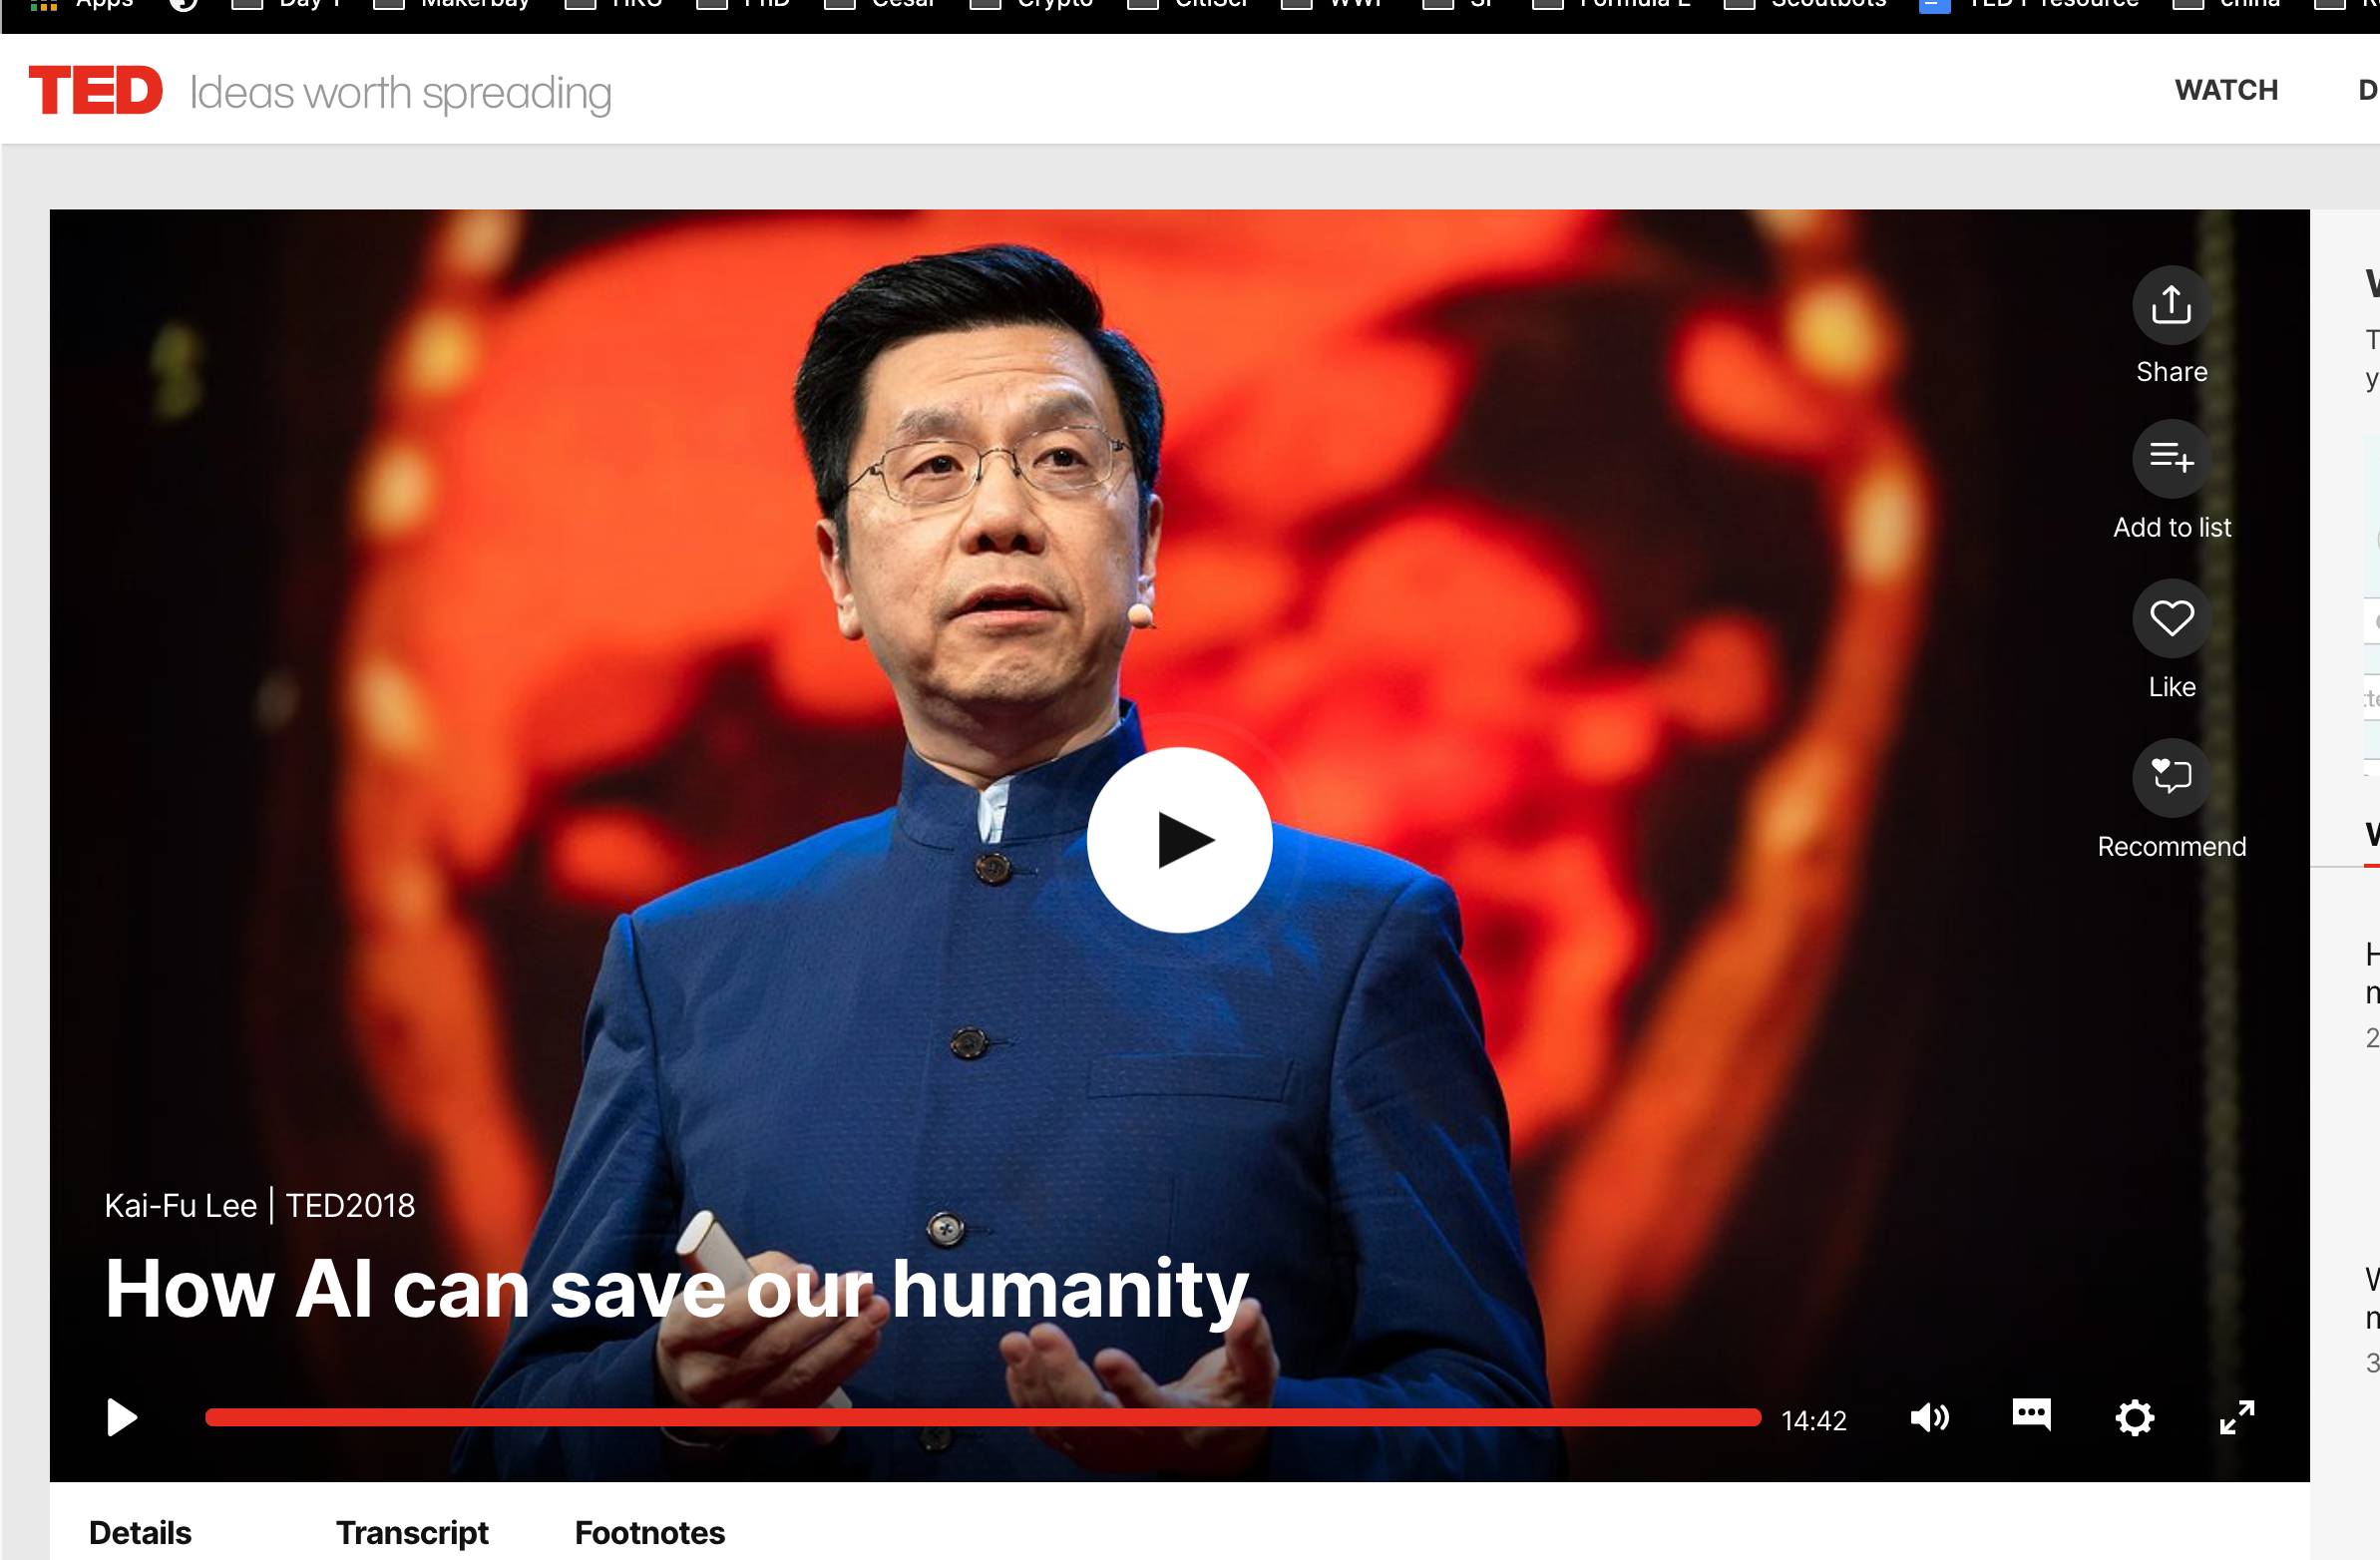 How AI Can Save Our Humanity